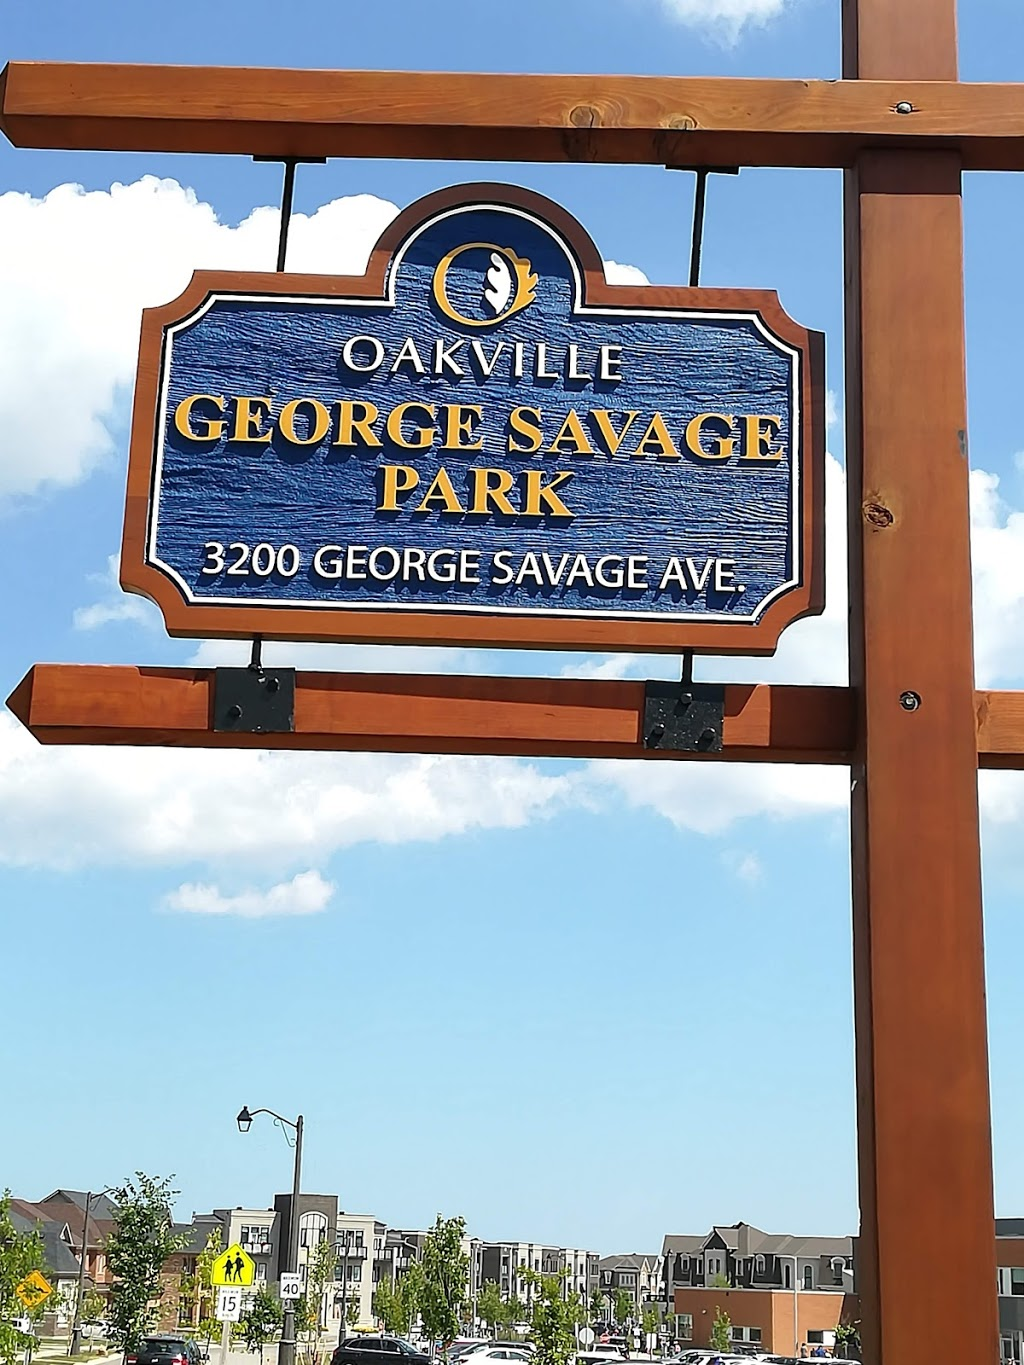 George Savage Neighbourhood Park | park | 3200 George Savage Ave, Oakville, ON L6M 4M2, Canada | 9058456601 OR +1 905-845-6601